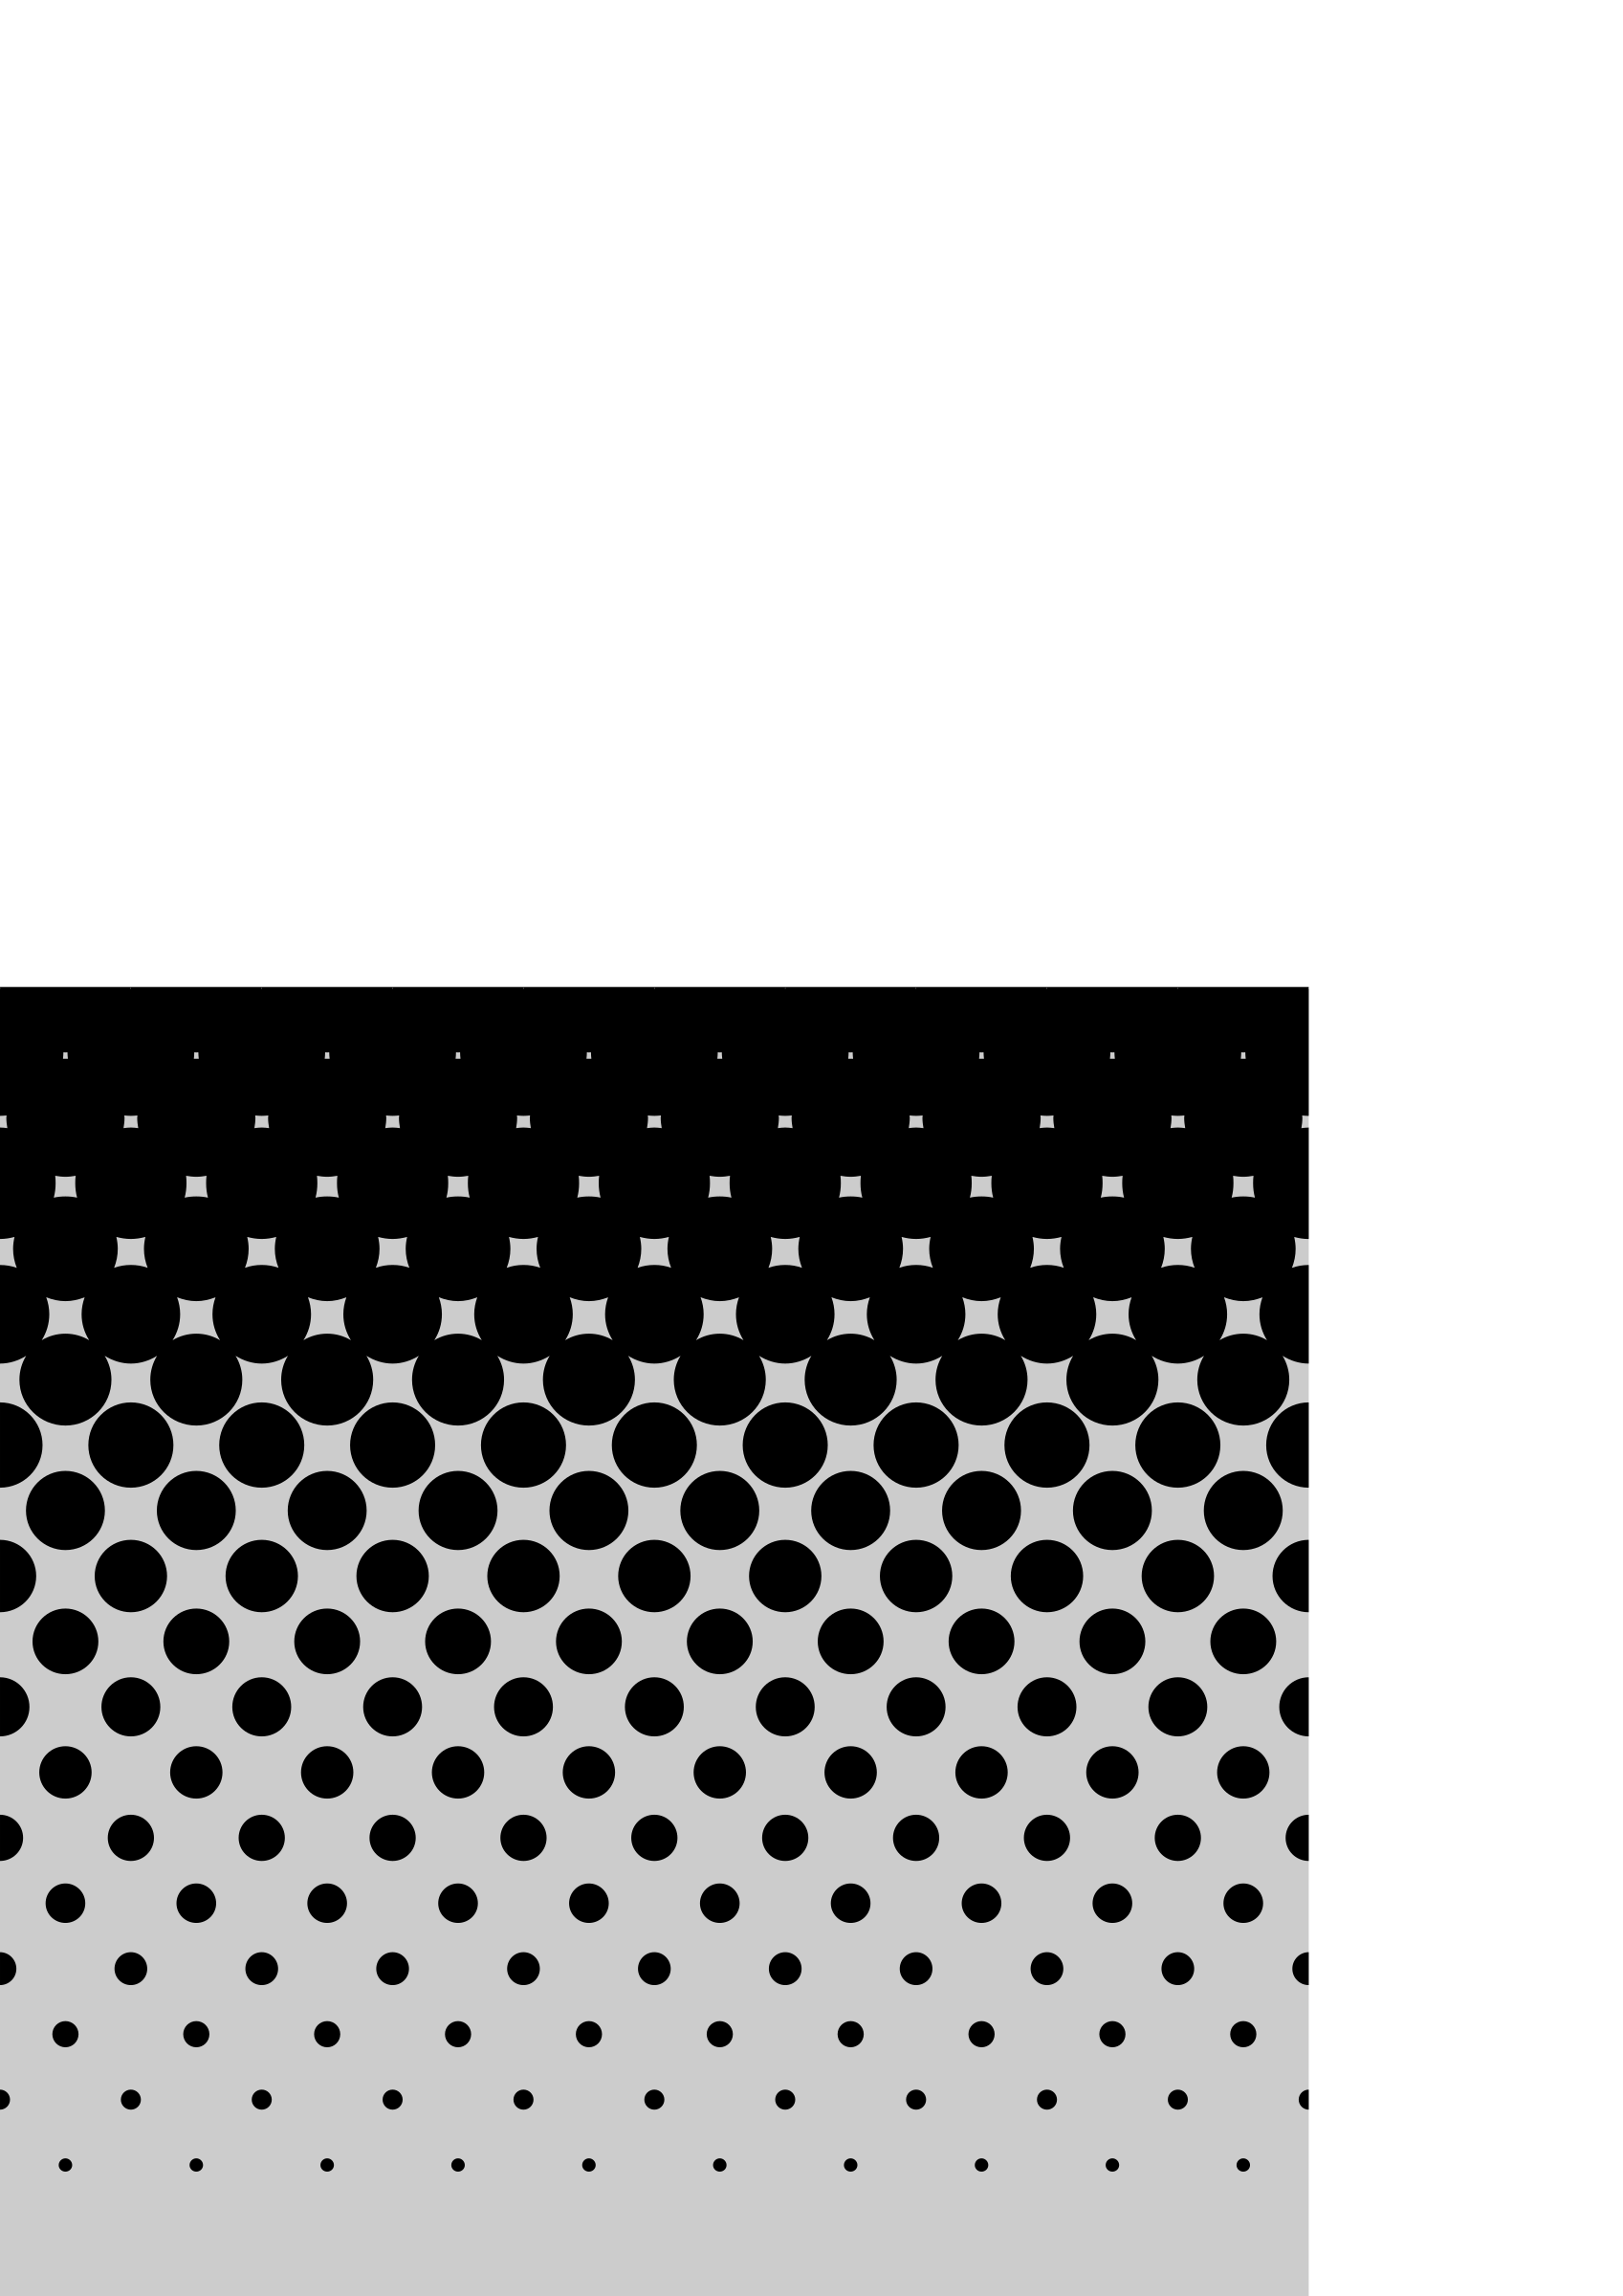 square gradient halftone by tegarmaji